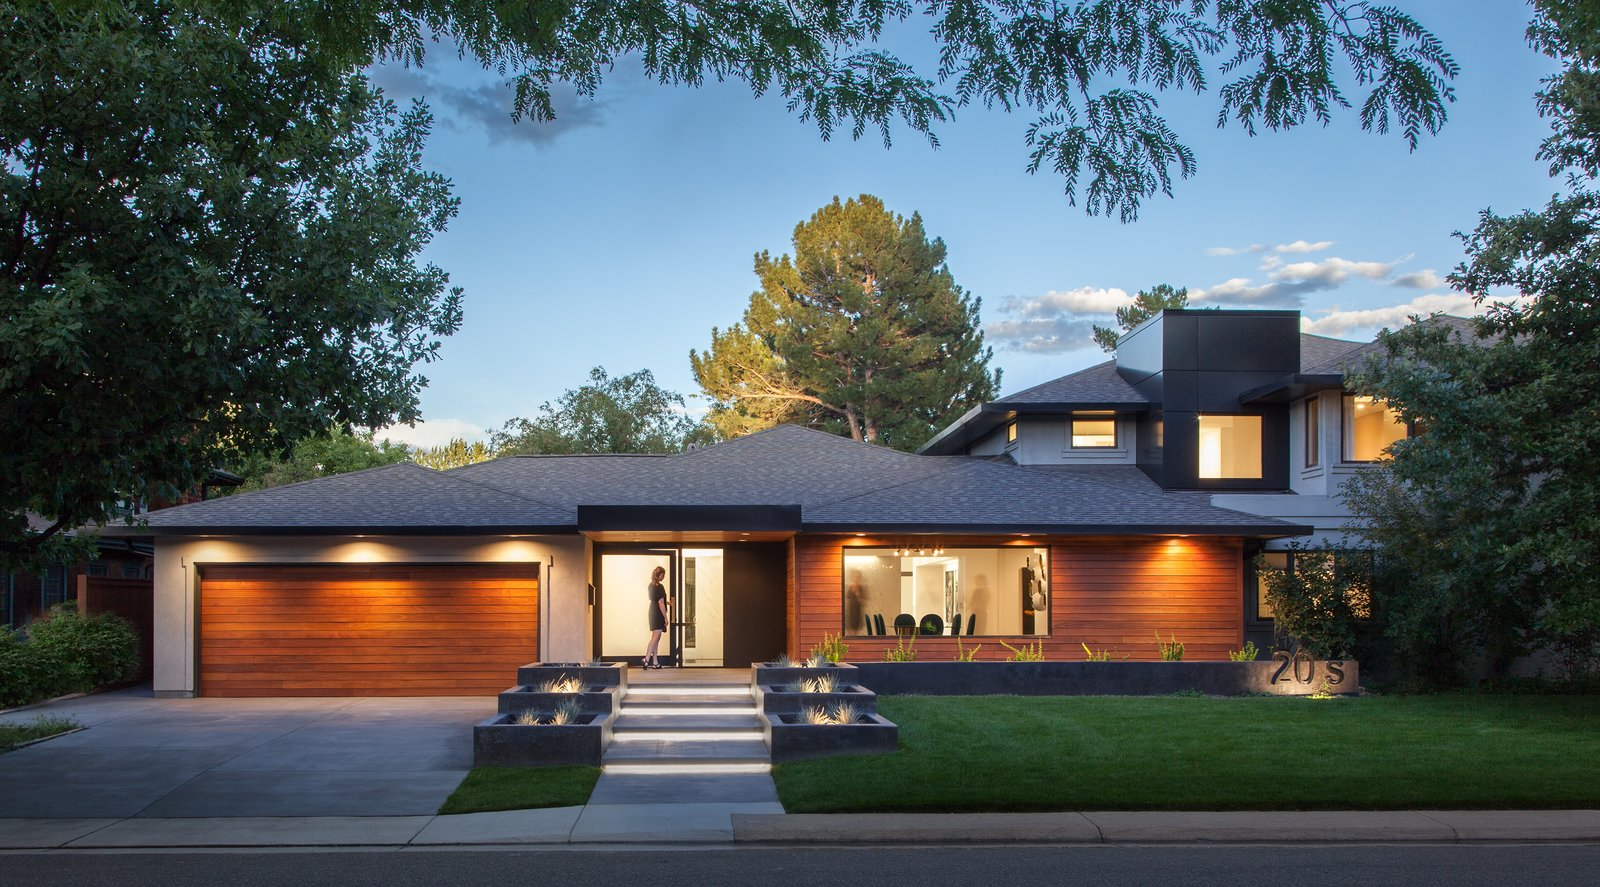 Exterior, House Building Type, Shingles Roof Material, Wood Siding Material, and Hipped RoofLine Exterior   Donner Residence by Design Platform